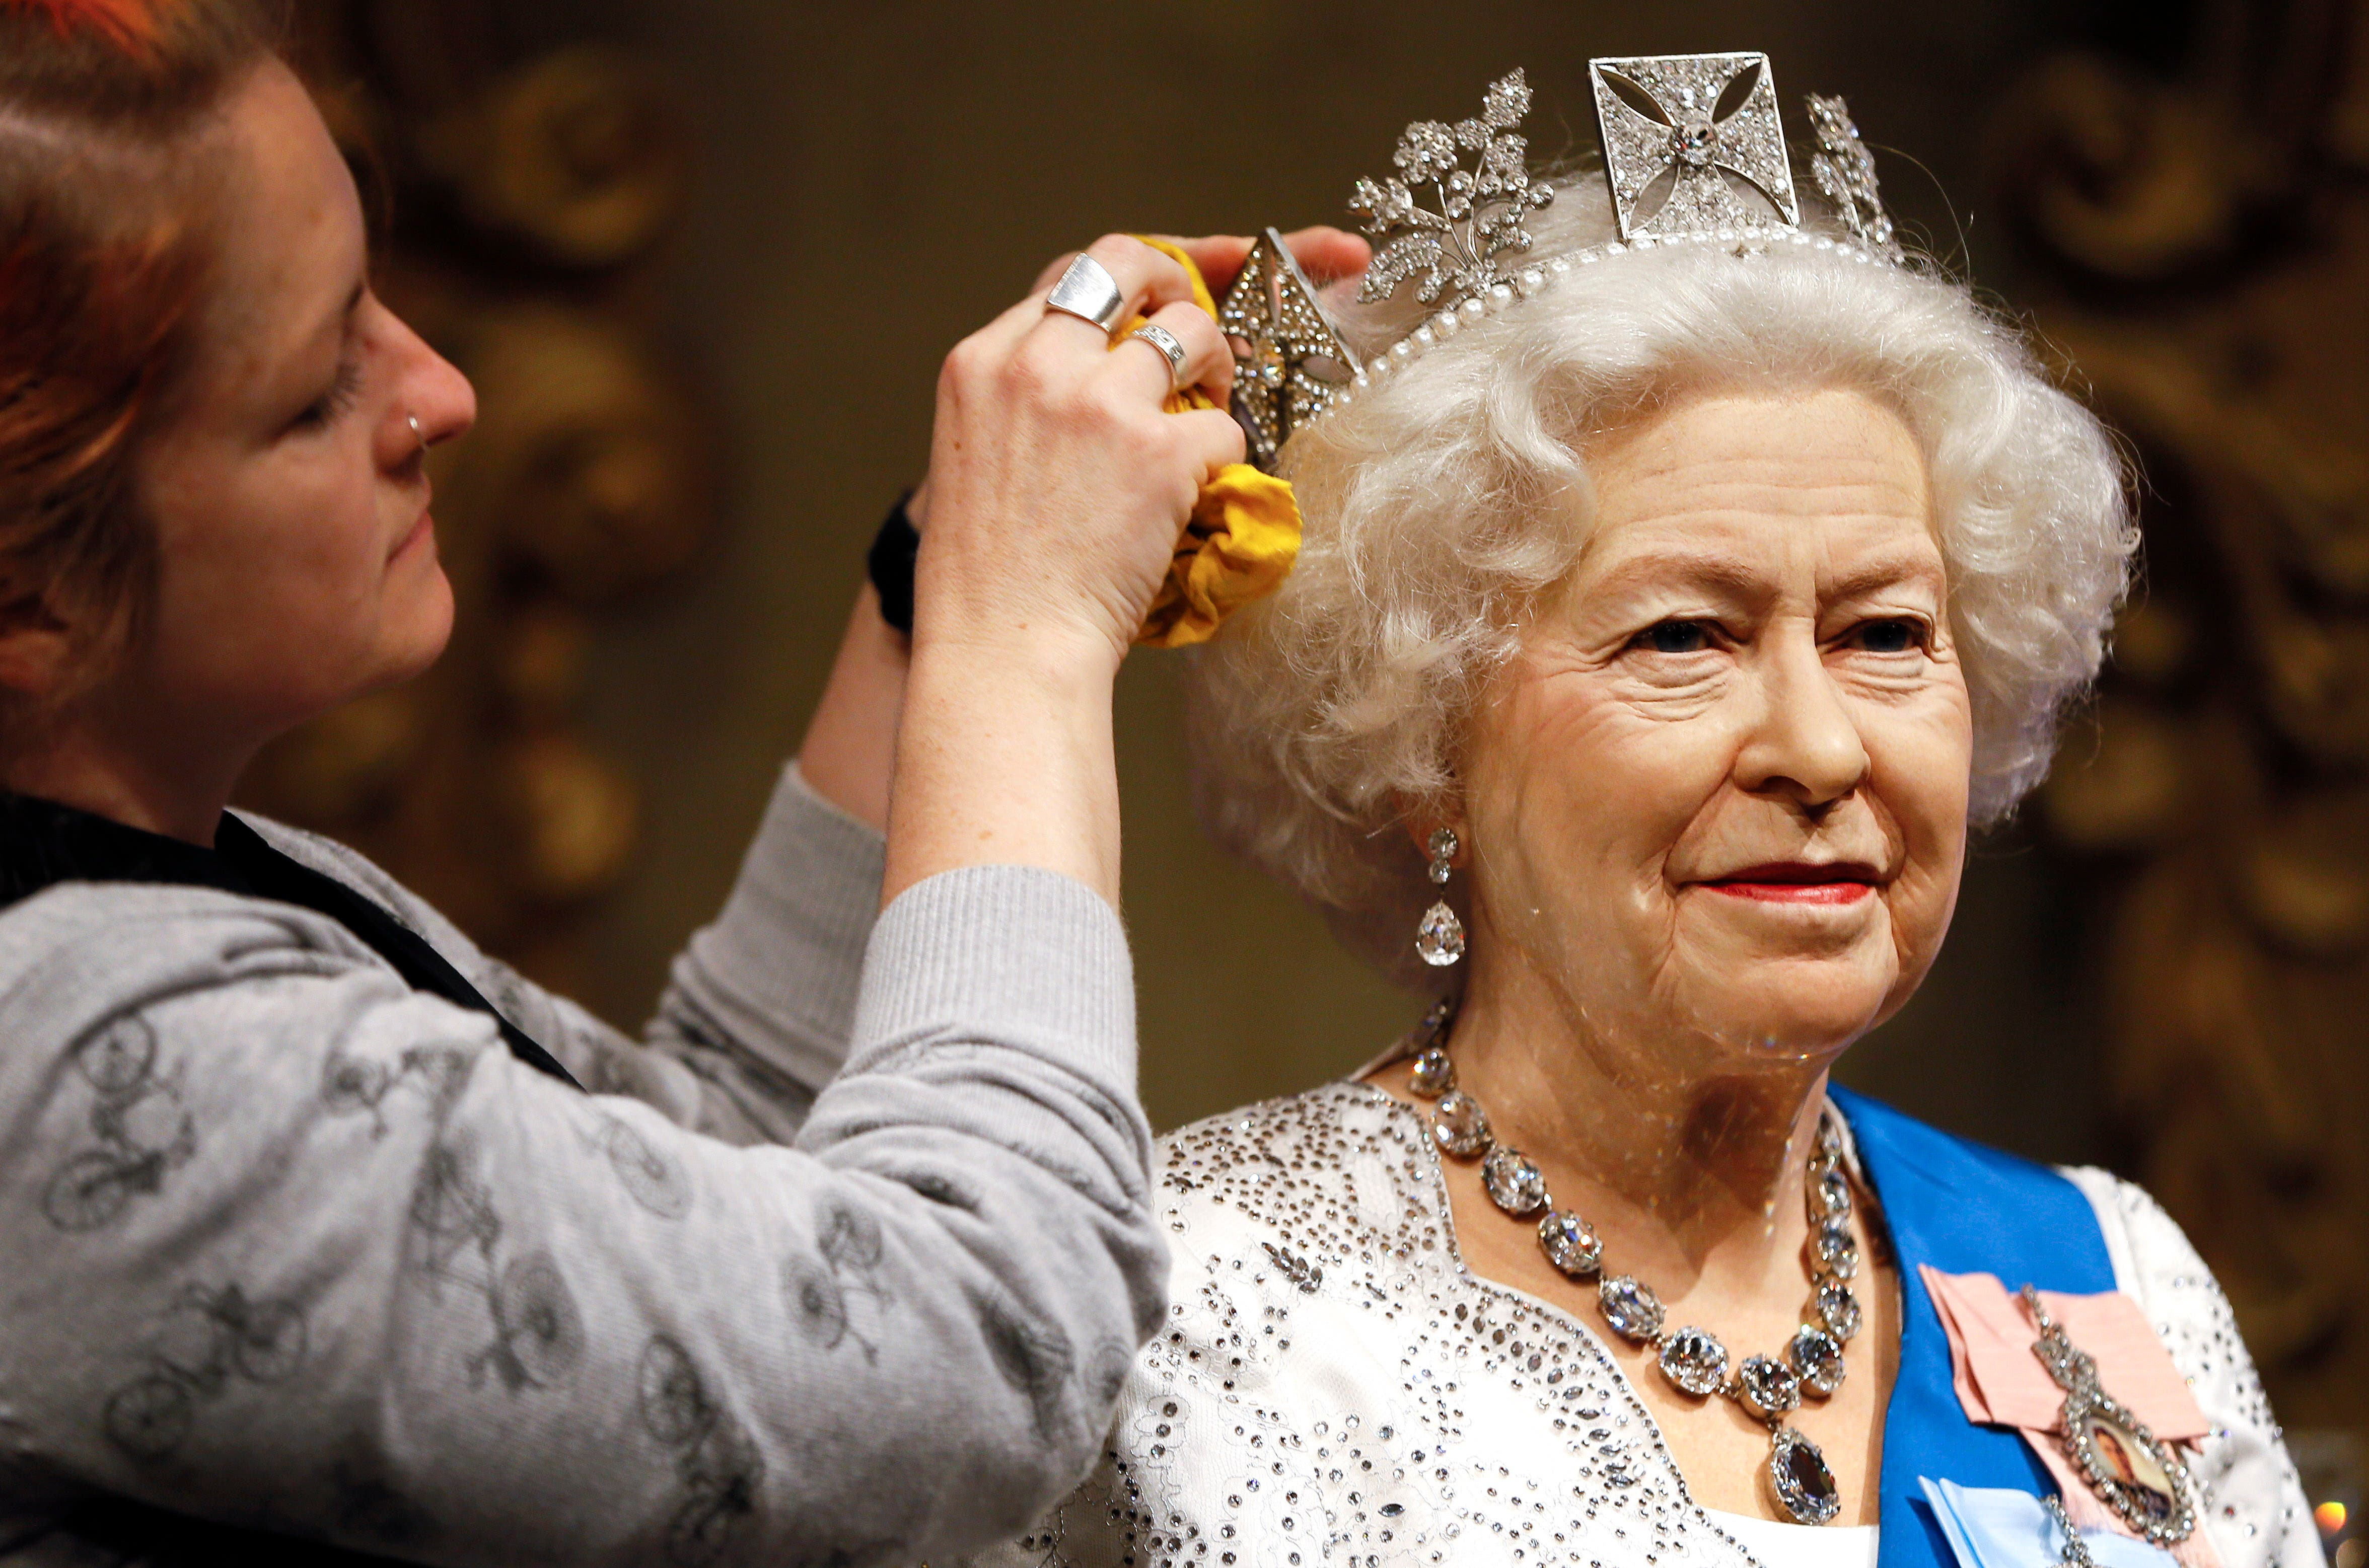 A wax work model of Britain's Queen Elizabeth II is prepared at Madame Tussauds in London, Monday, Sept. 7, 2015. AP